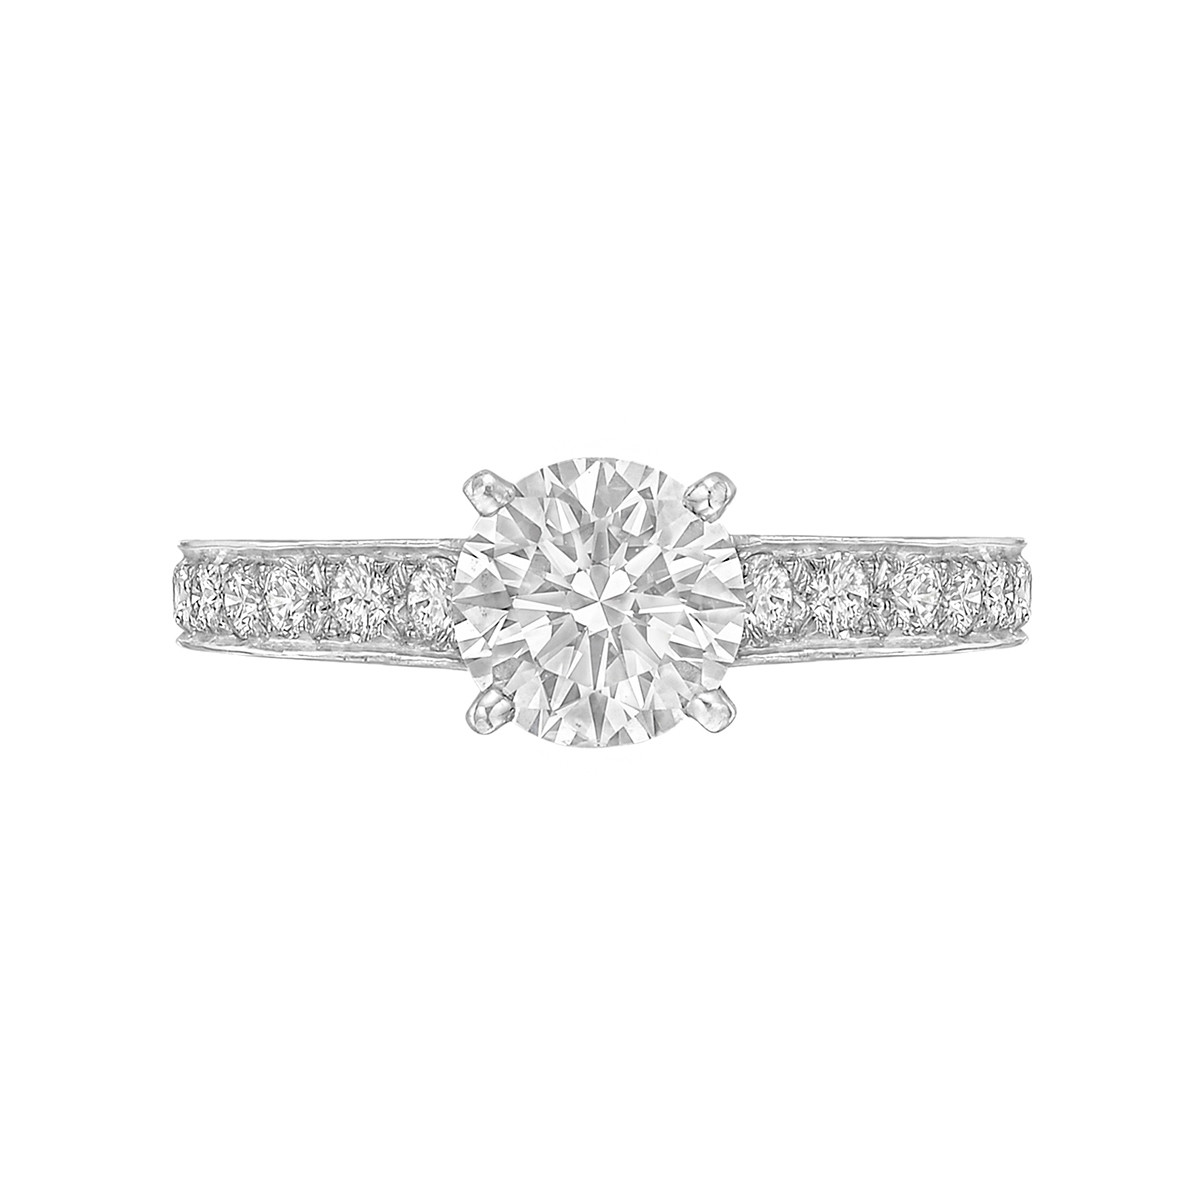 1.28 Carat Round Brilliant Diamond Ring